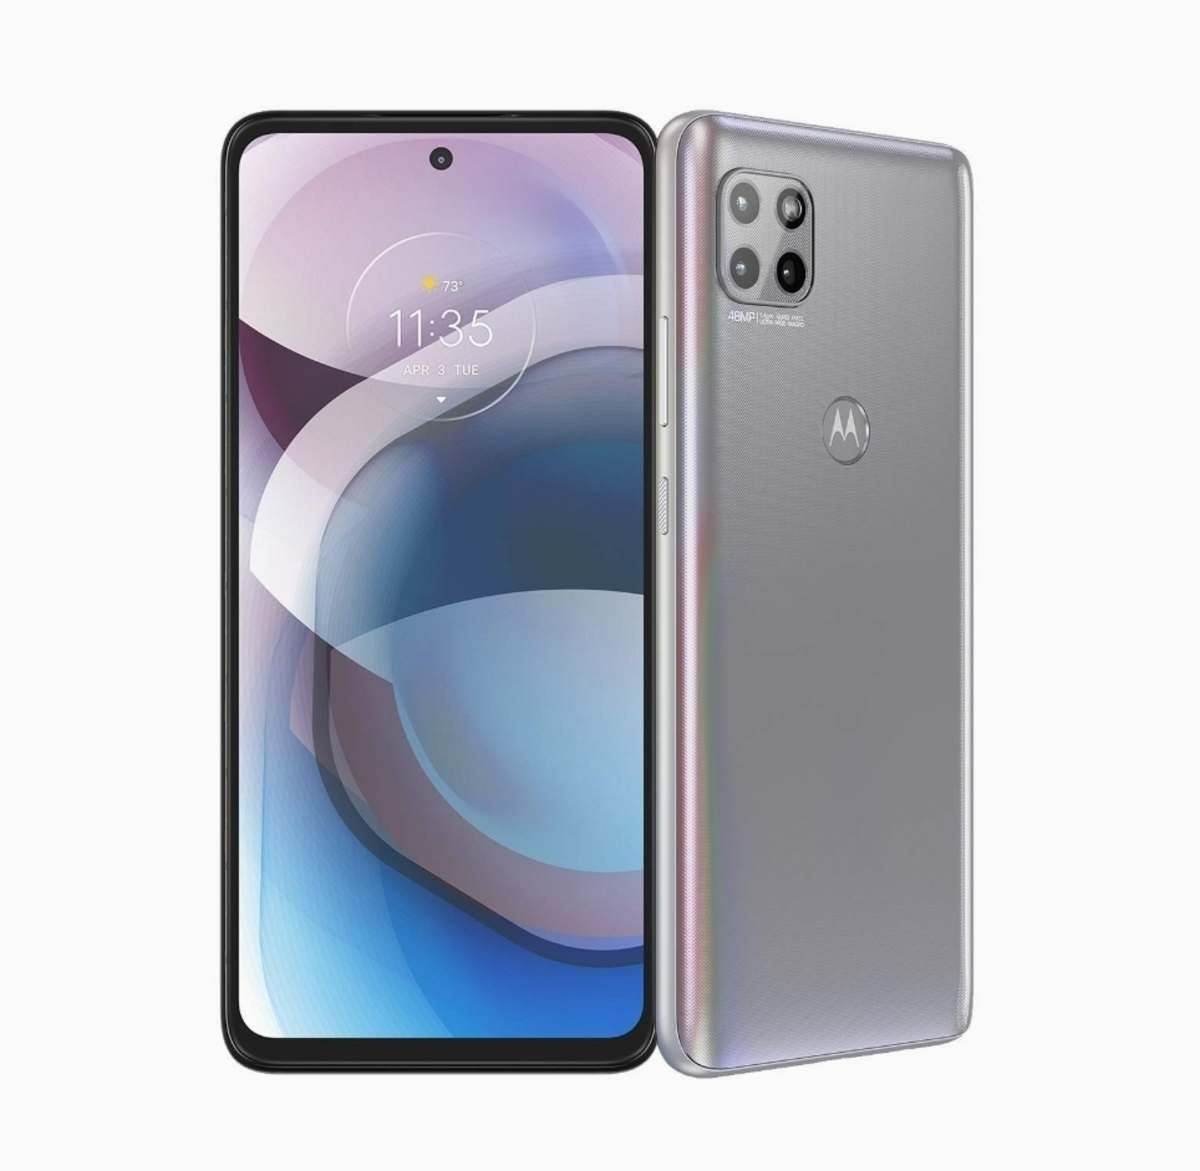 motorola one 5g ace price in Nigeria & Specification